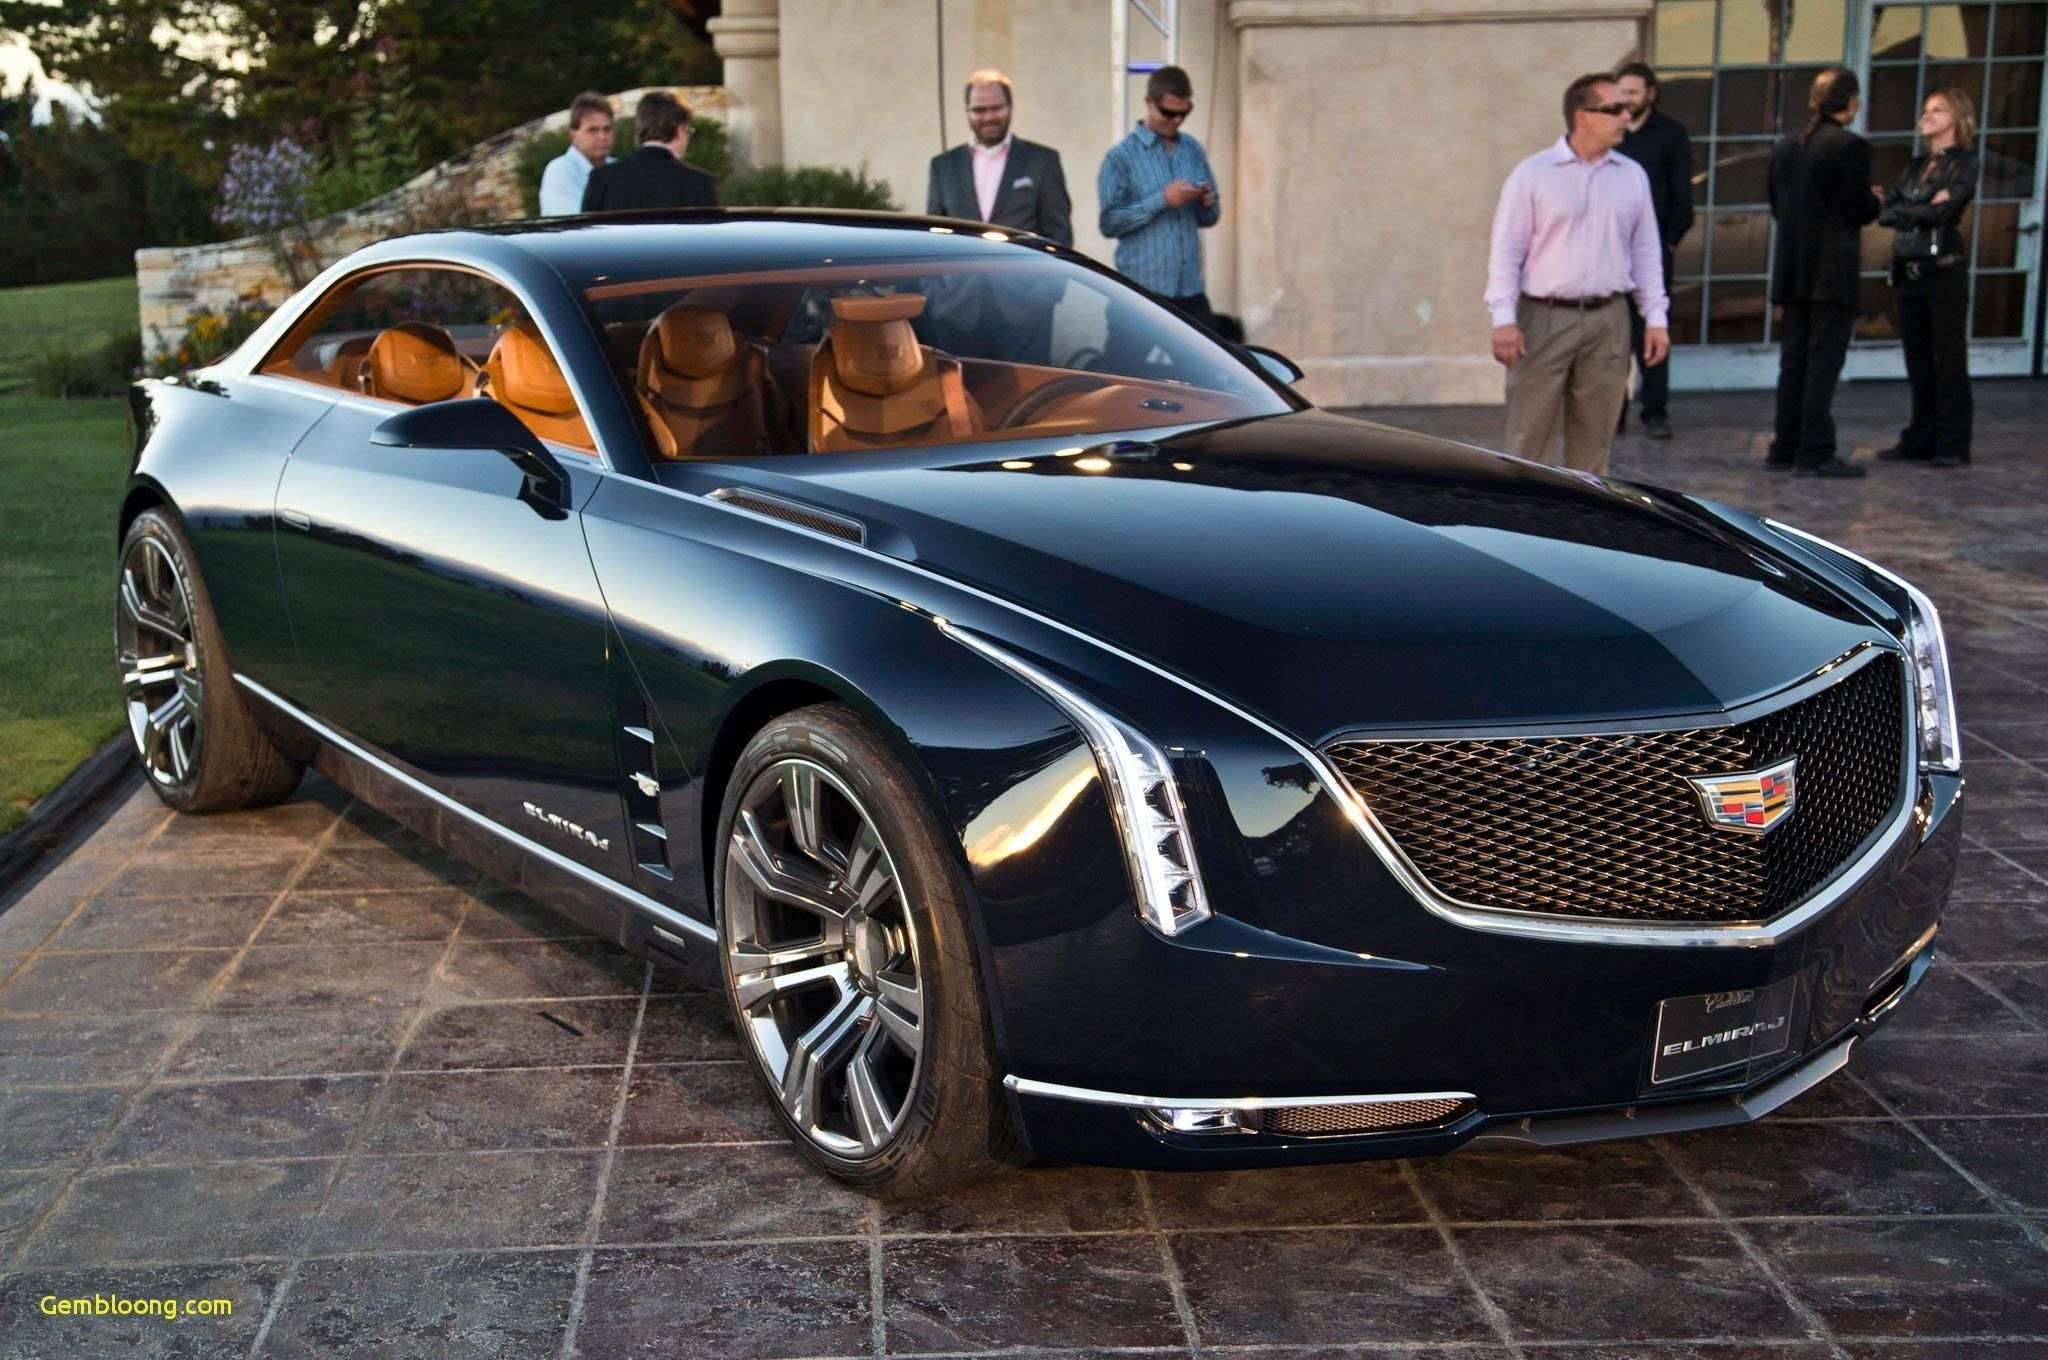 30 Concept of 2020 Cadillac Elmiraj Specs and Review for 2020 Cadillac Elmiraj